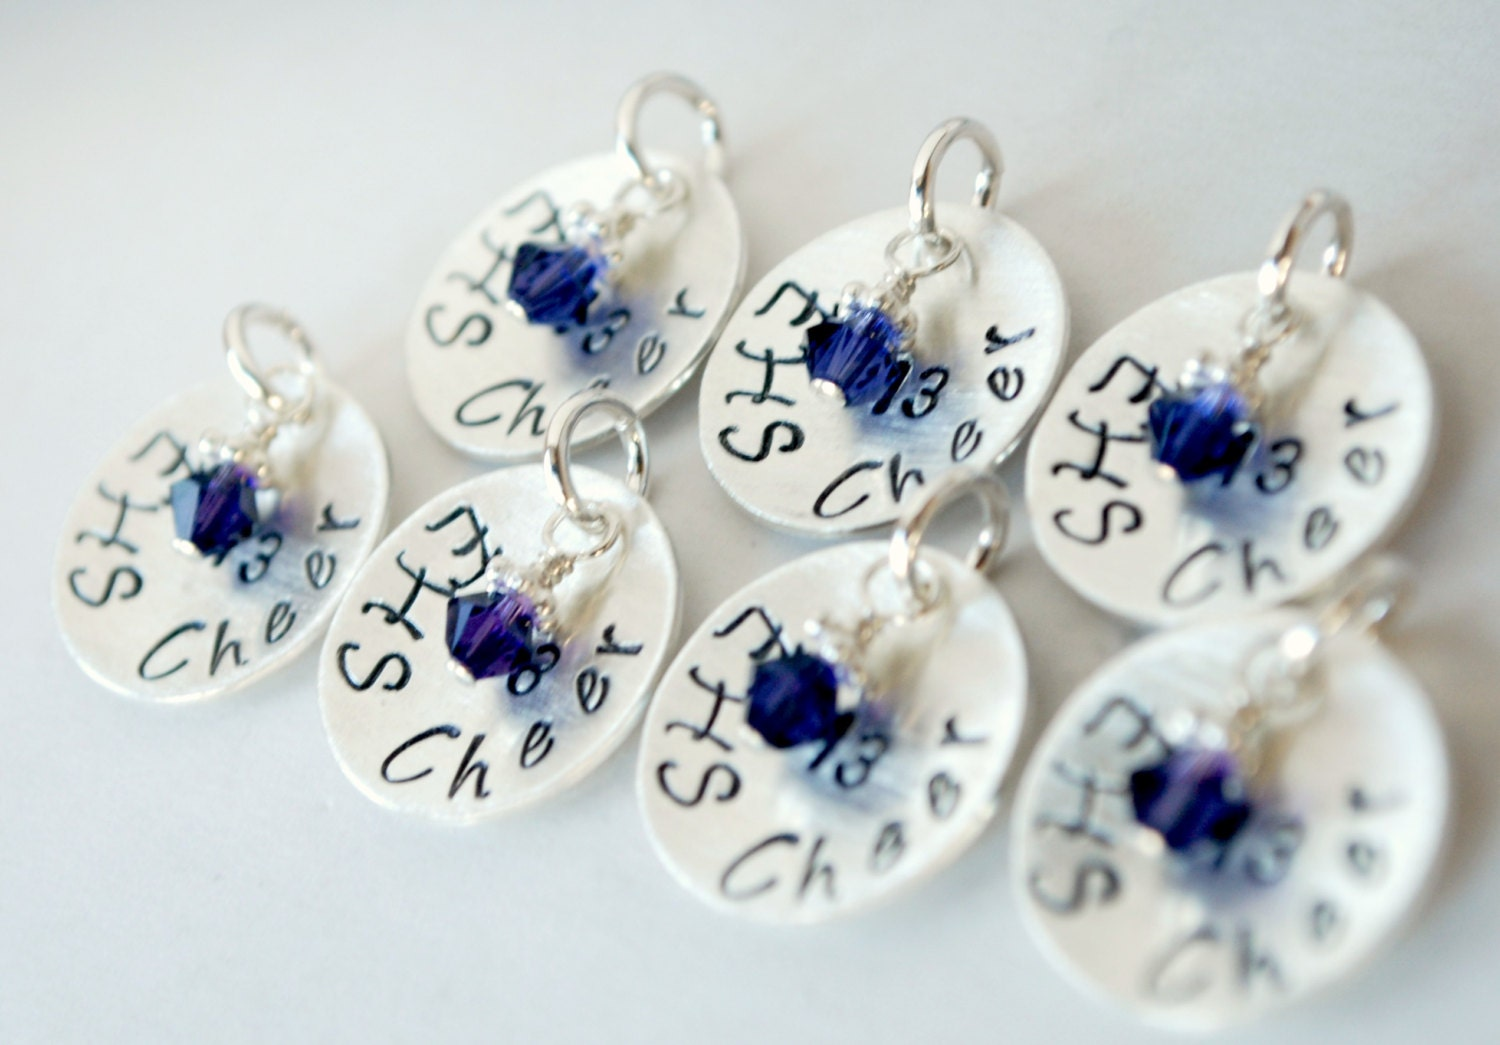 charm personalized cheer charm by studio463 on